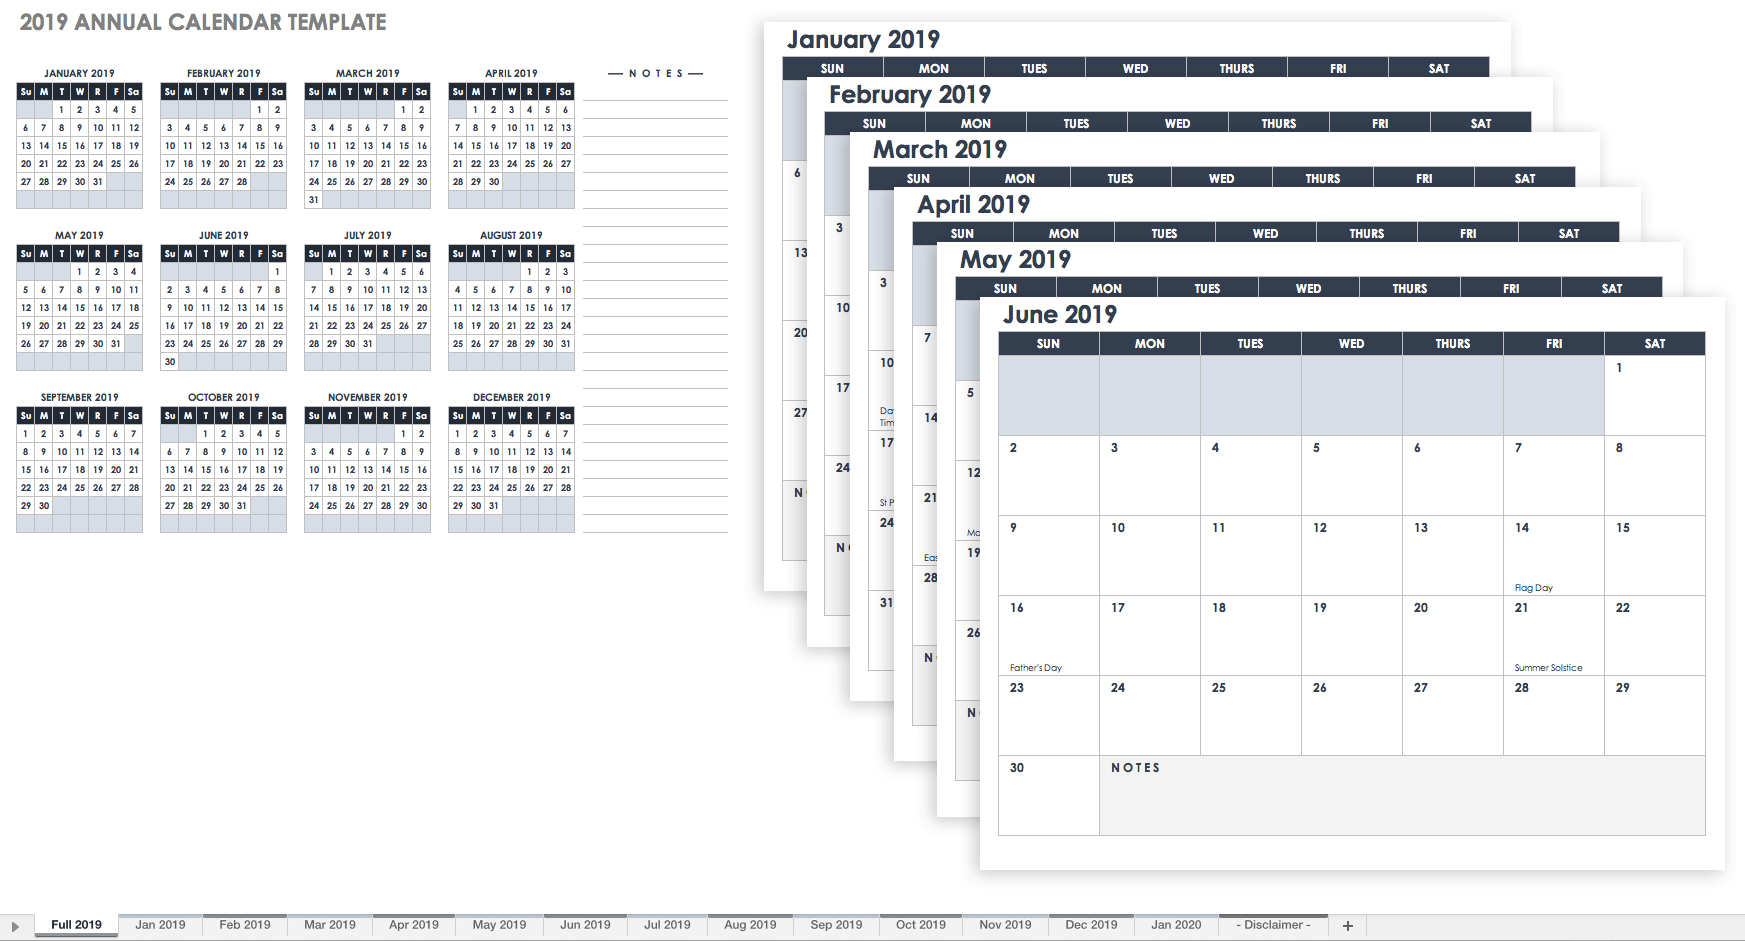 15 Free Monthly Calendar Templates | Smartsheet with regard to Free Blank Printable Monthly Calendar